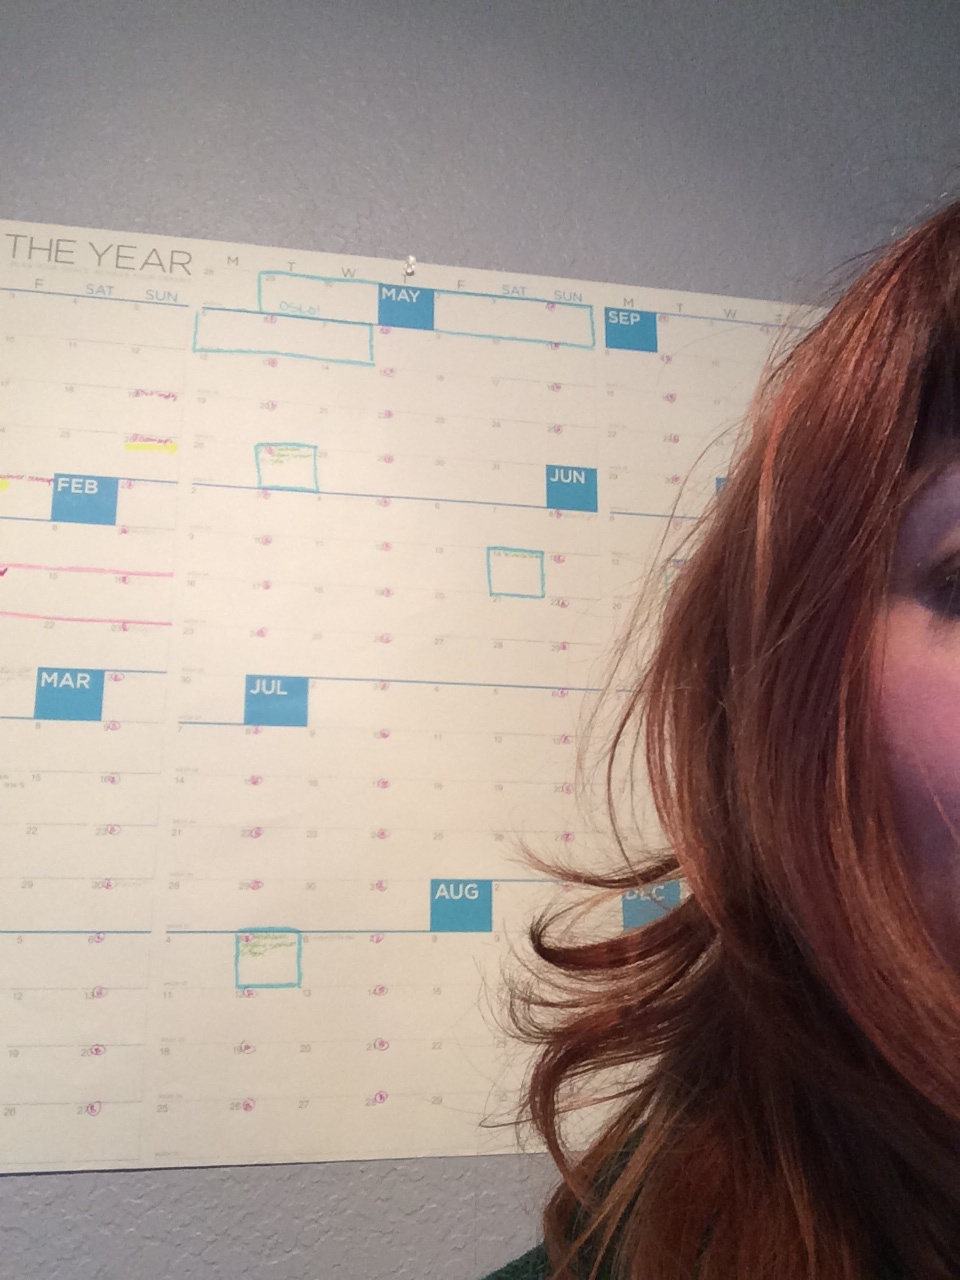 Me and my calendar of dreams.